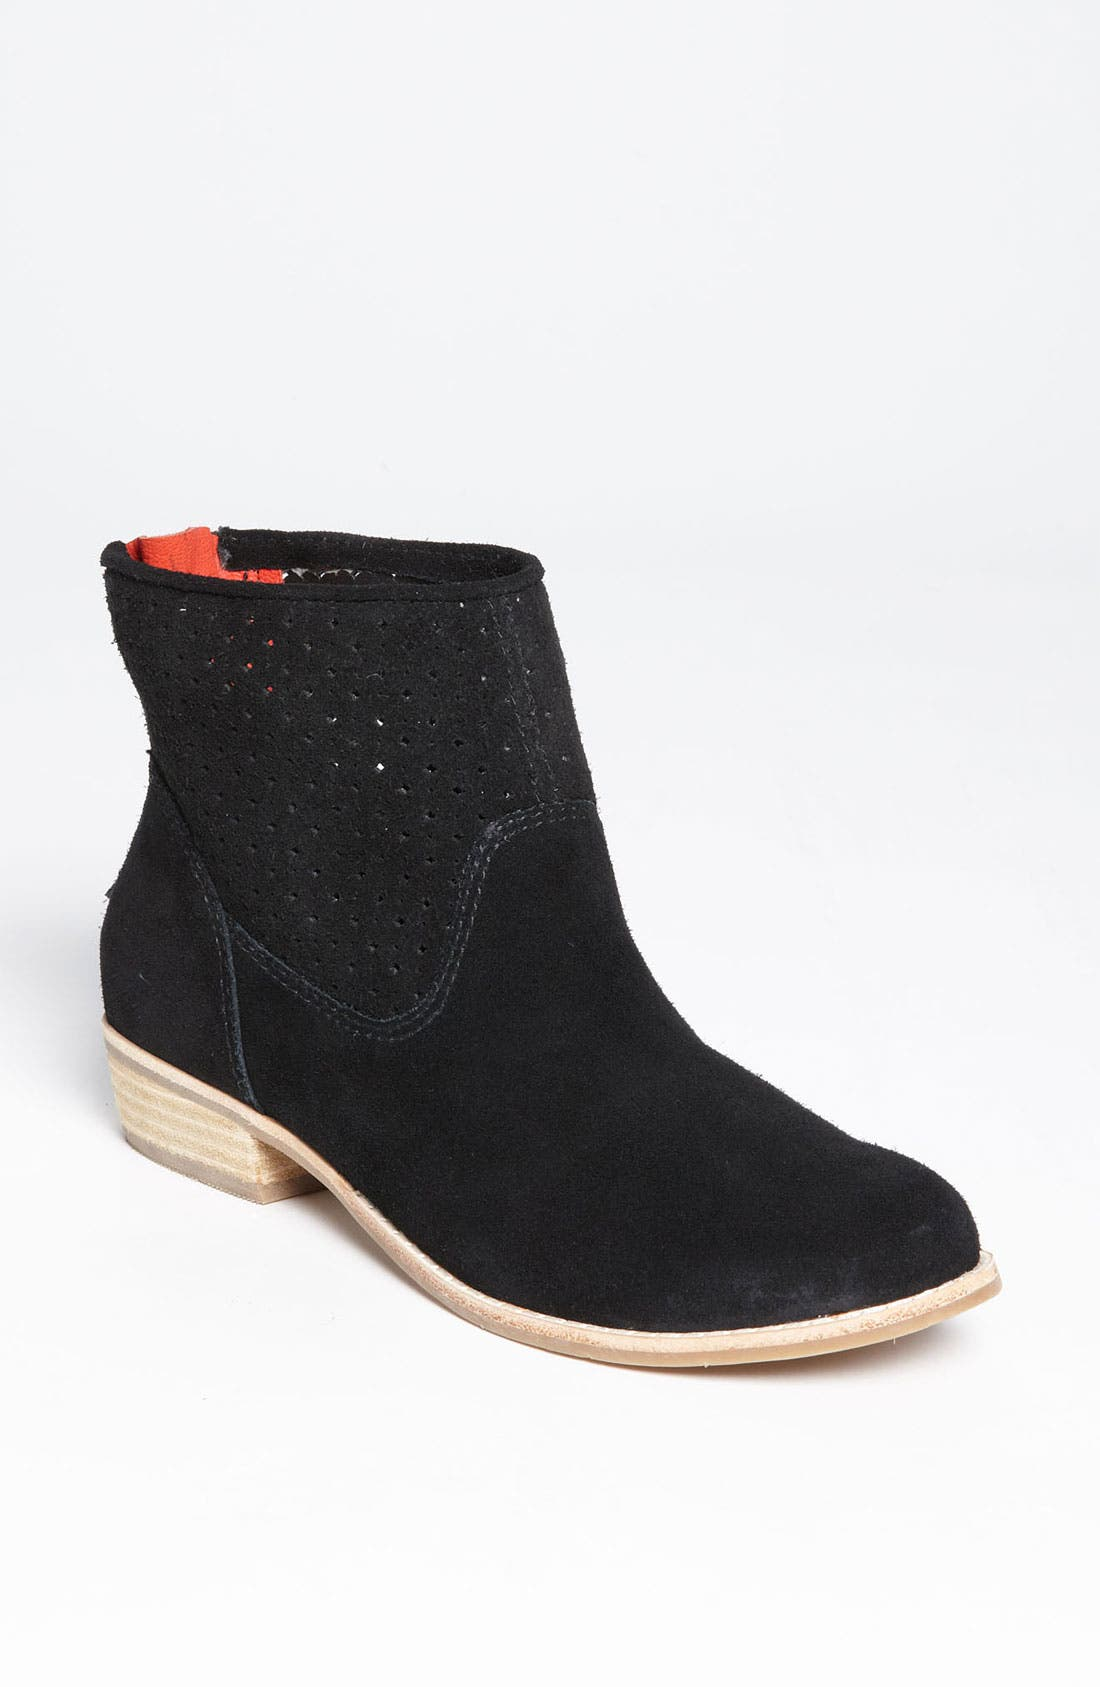 Main Image - DV by Dolce Vita 'Maeve' Boot